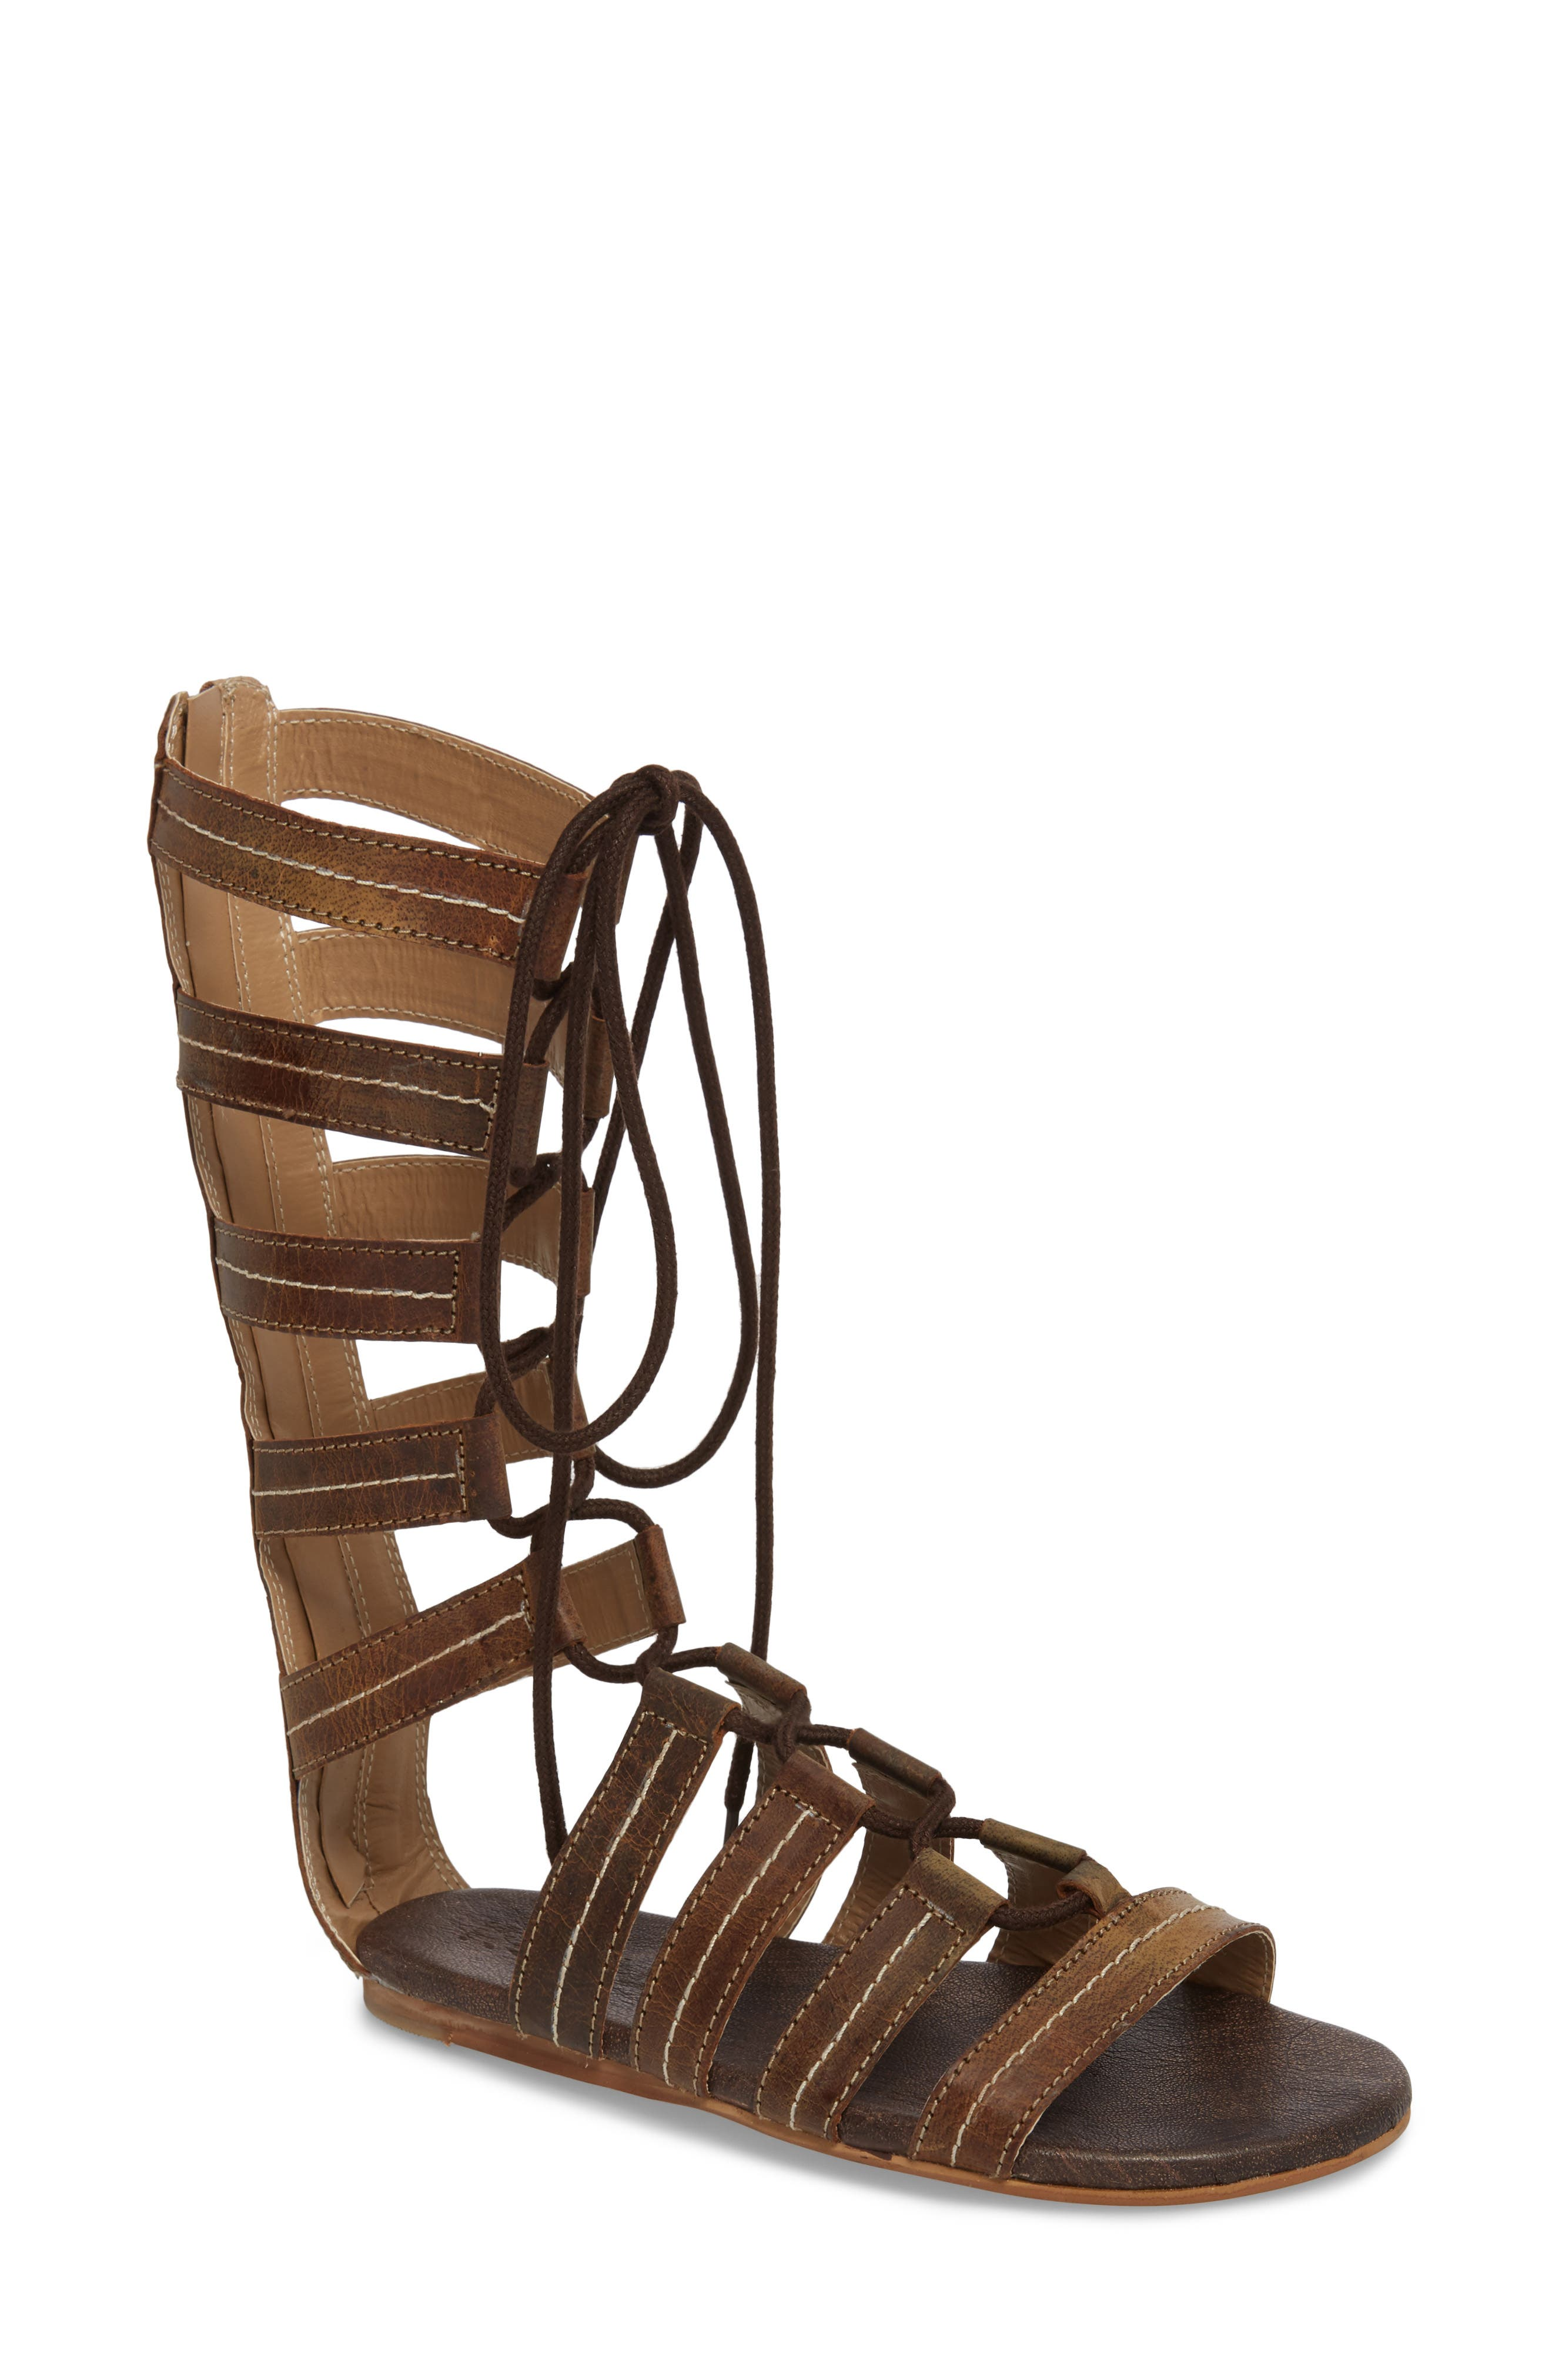 Rhea Lace-Up Gladiator Sandal,                             Main thumbnail 1, color,                             Tan Greenland